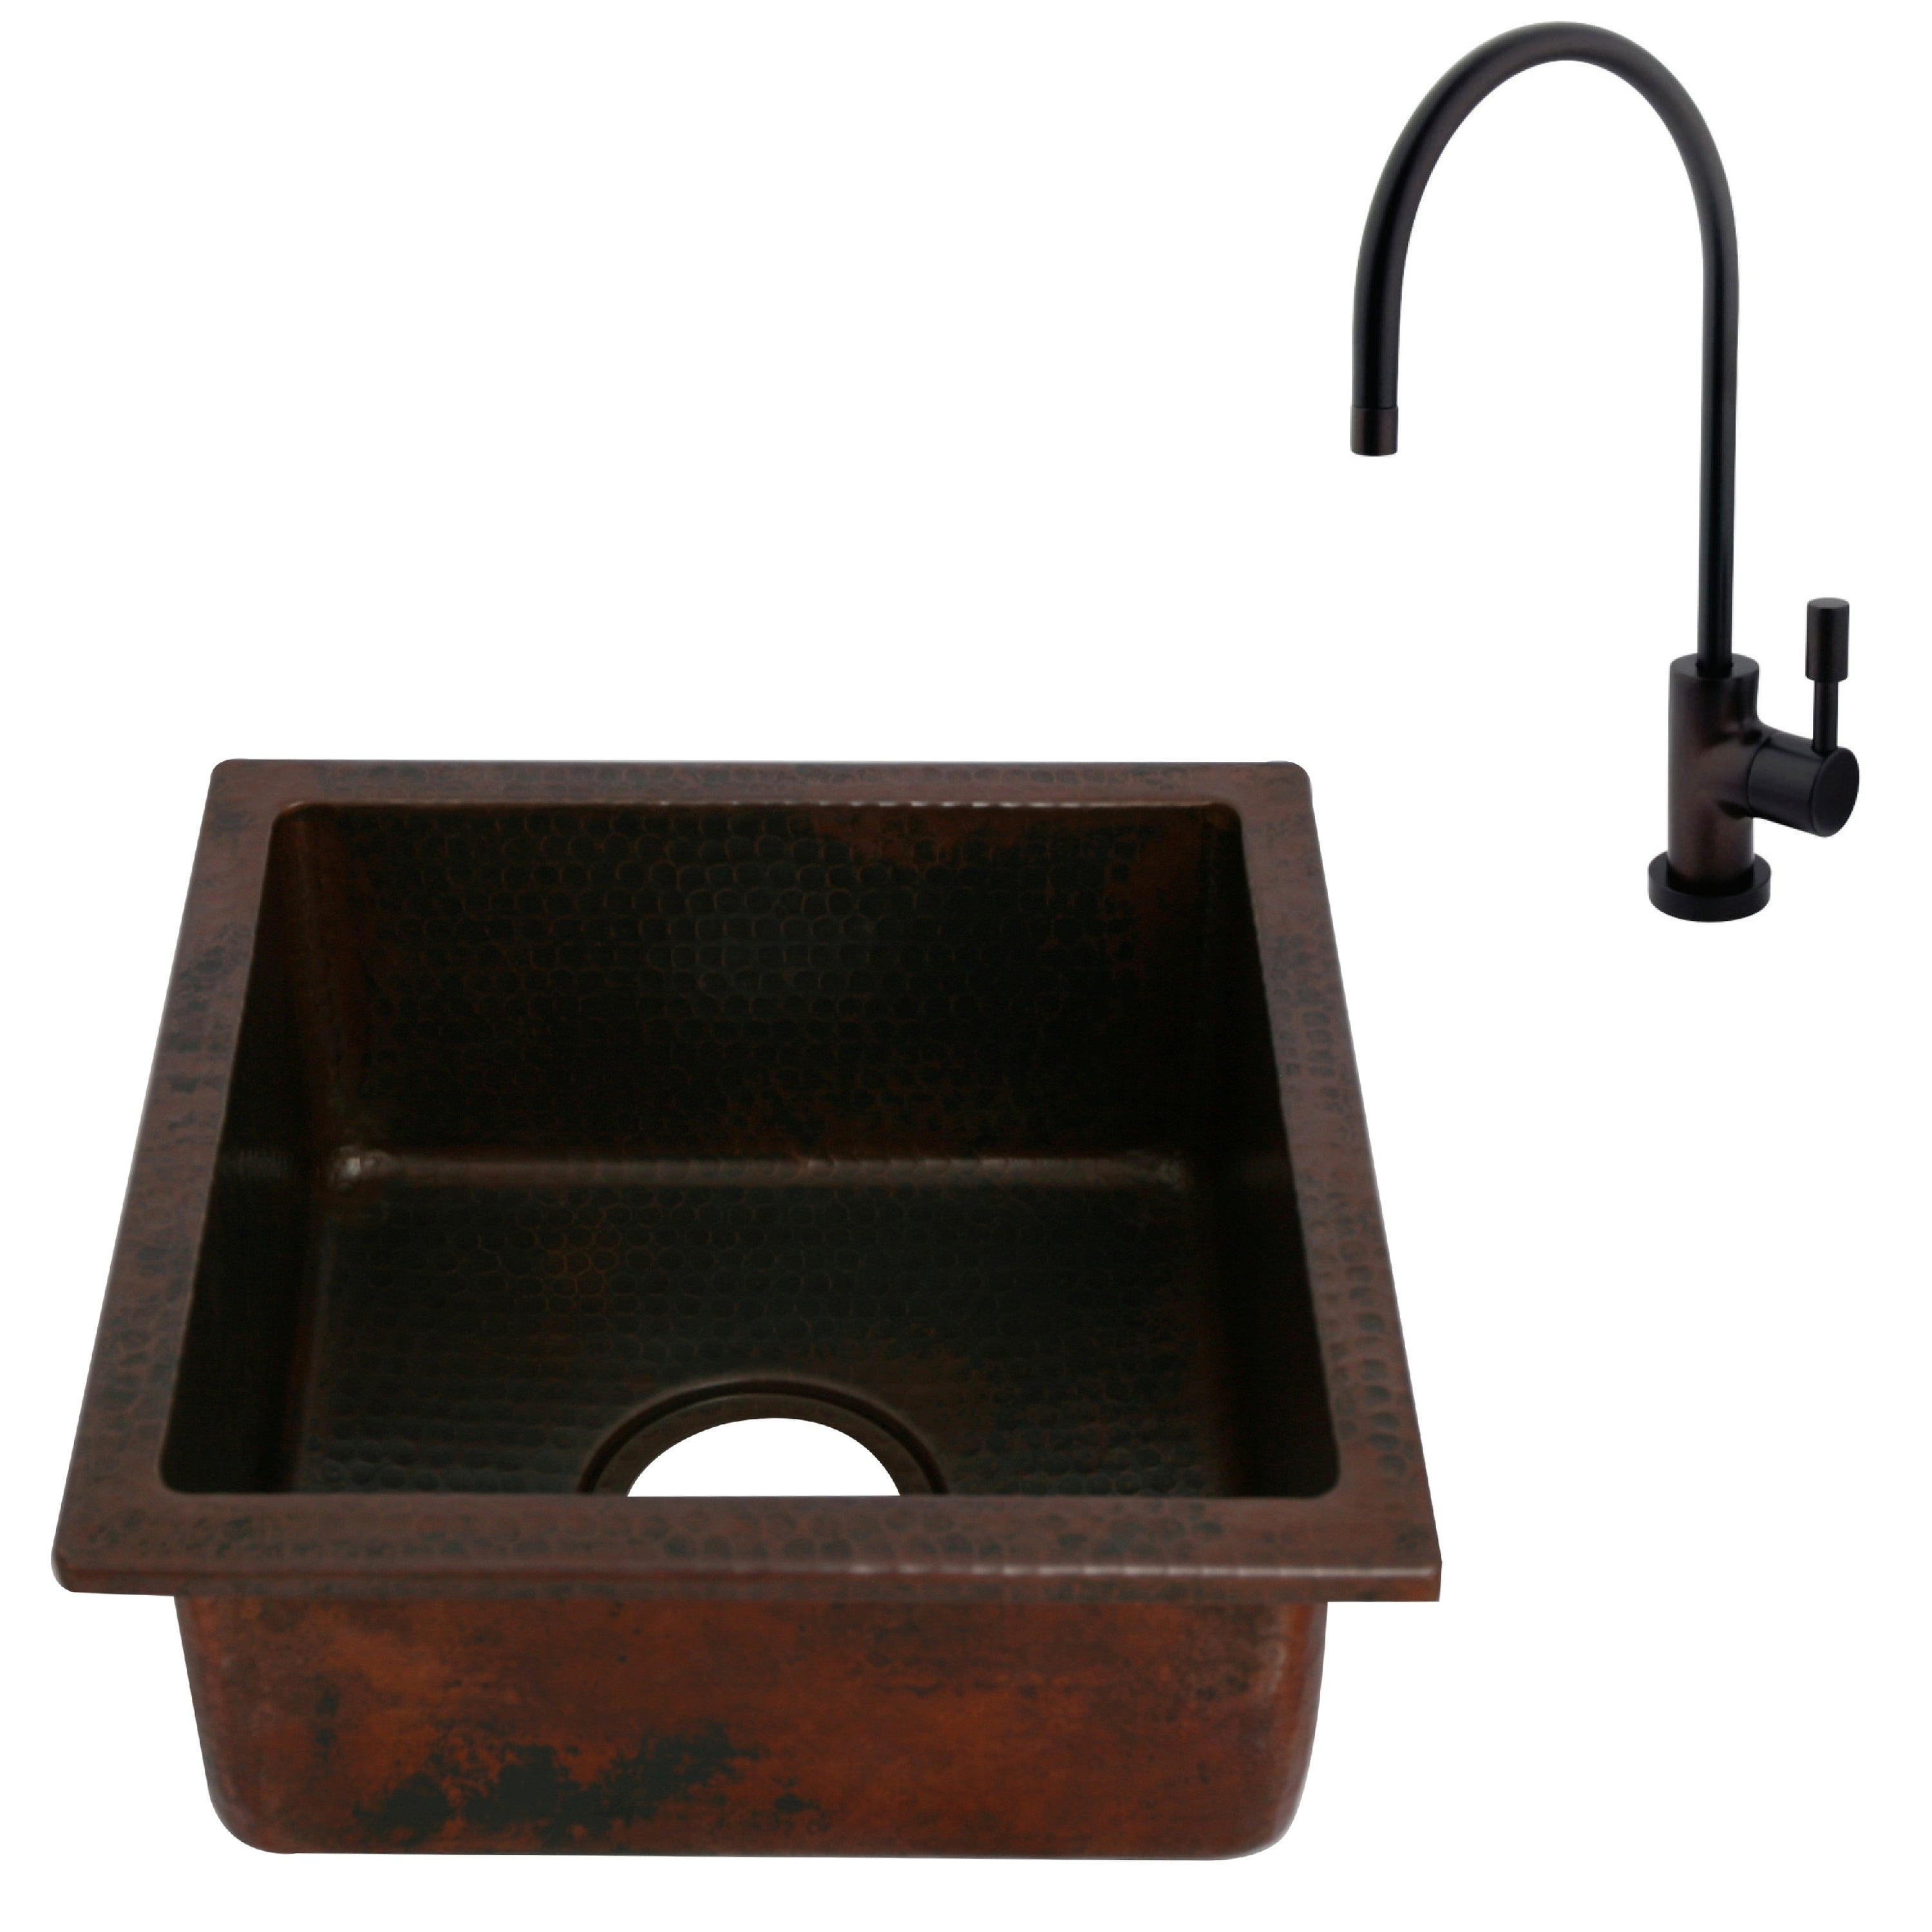 Unikwities 14X14X6.5 inch Square Undermount Copper Sink with Faucet ...